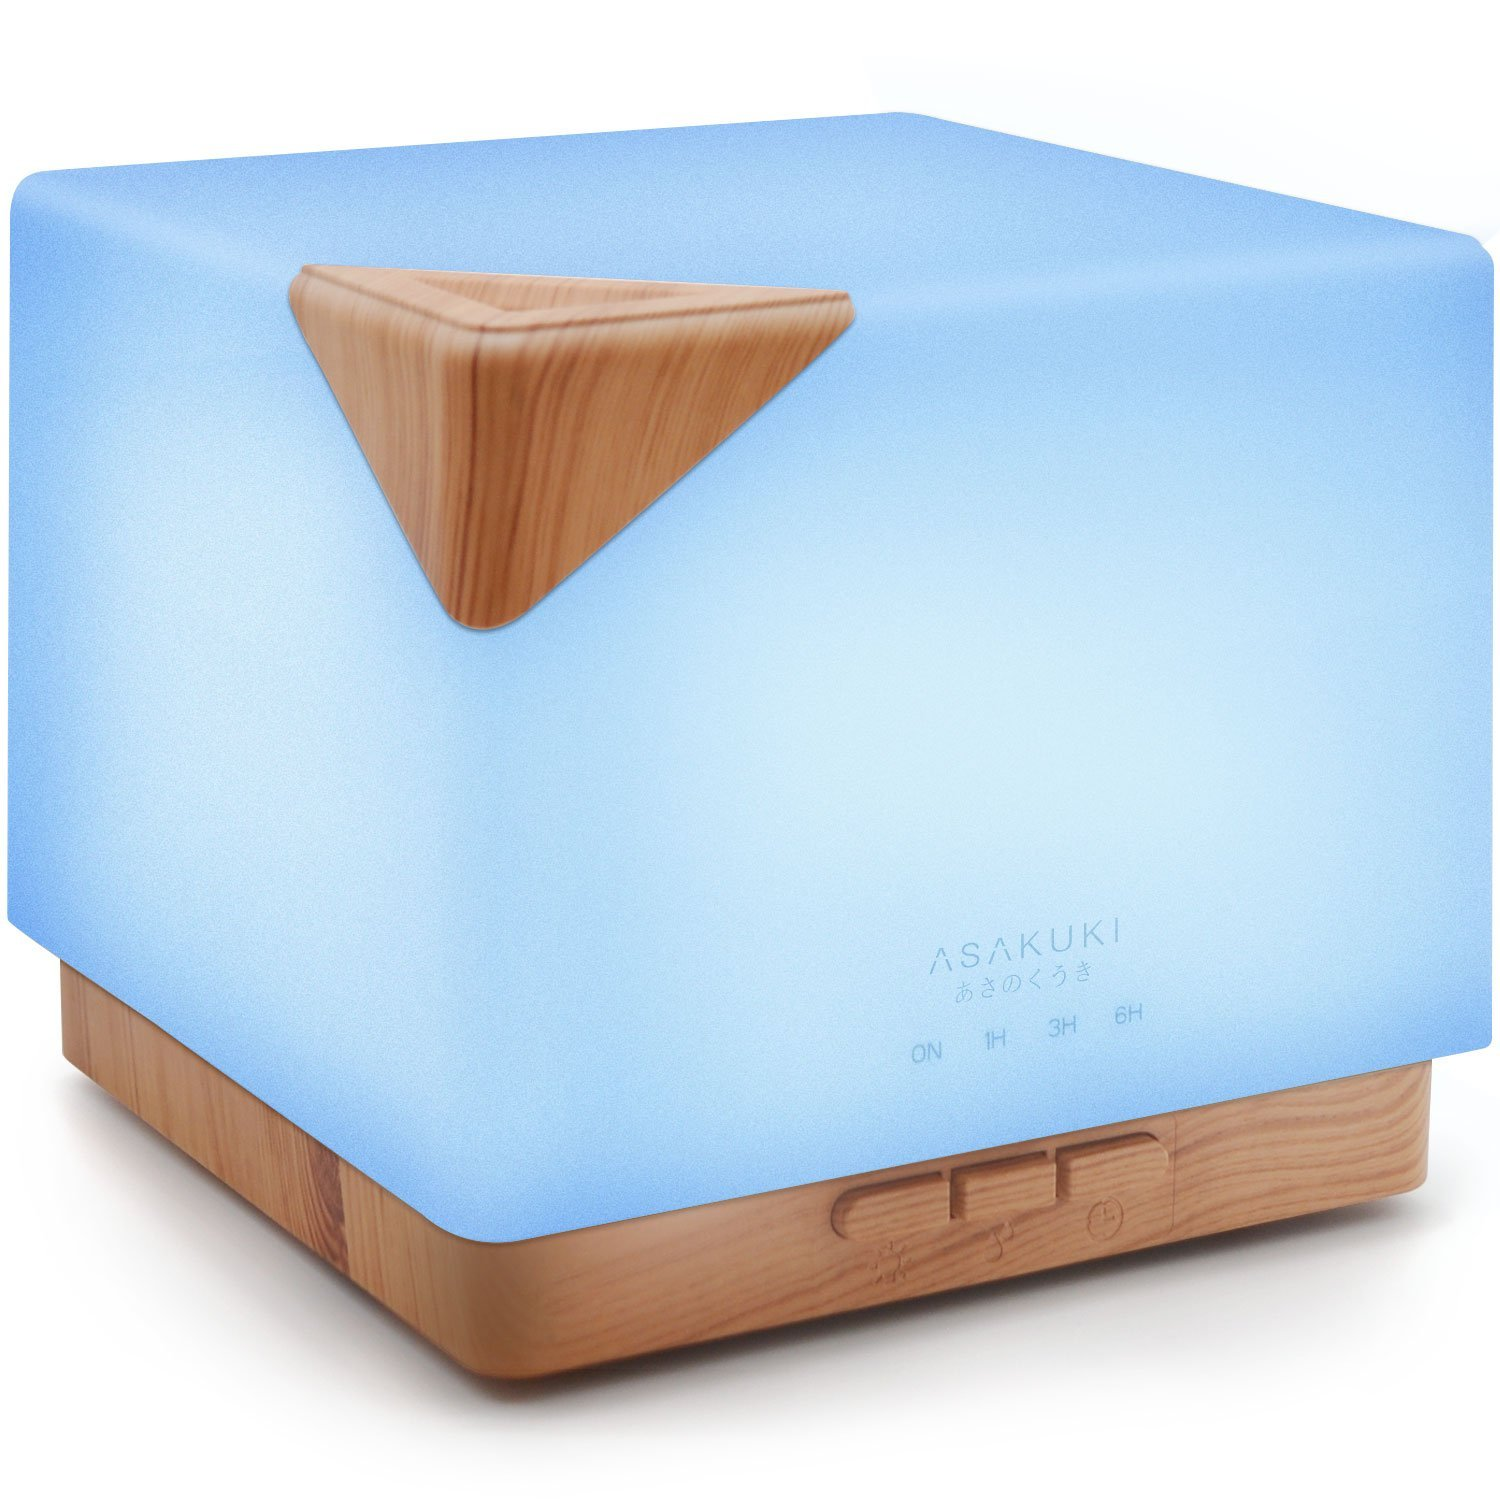 Asakuki Essential Oil Diffuser Black Friday Deal 2020